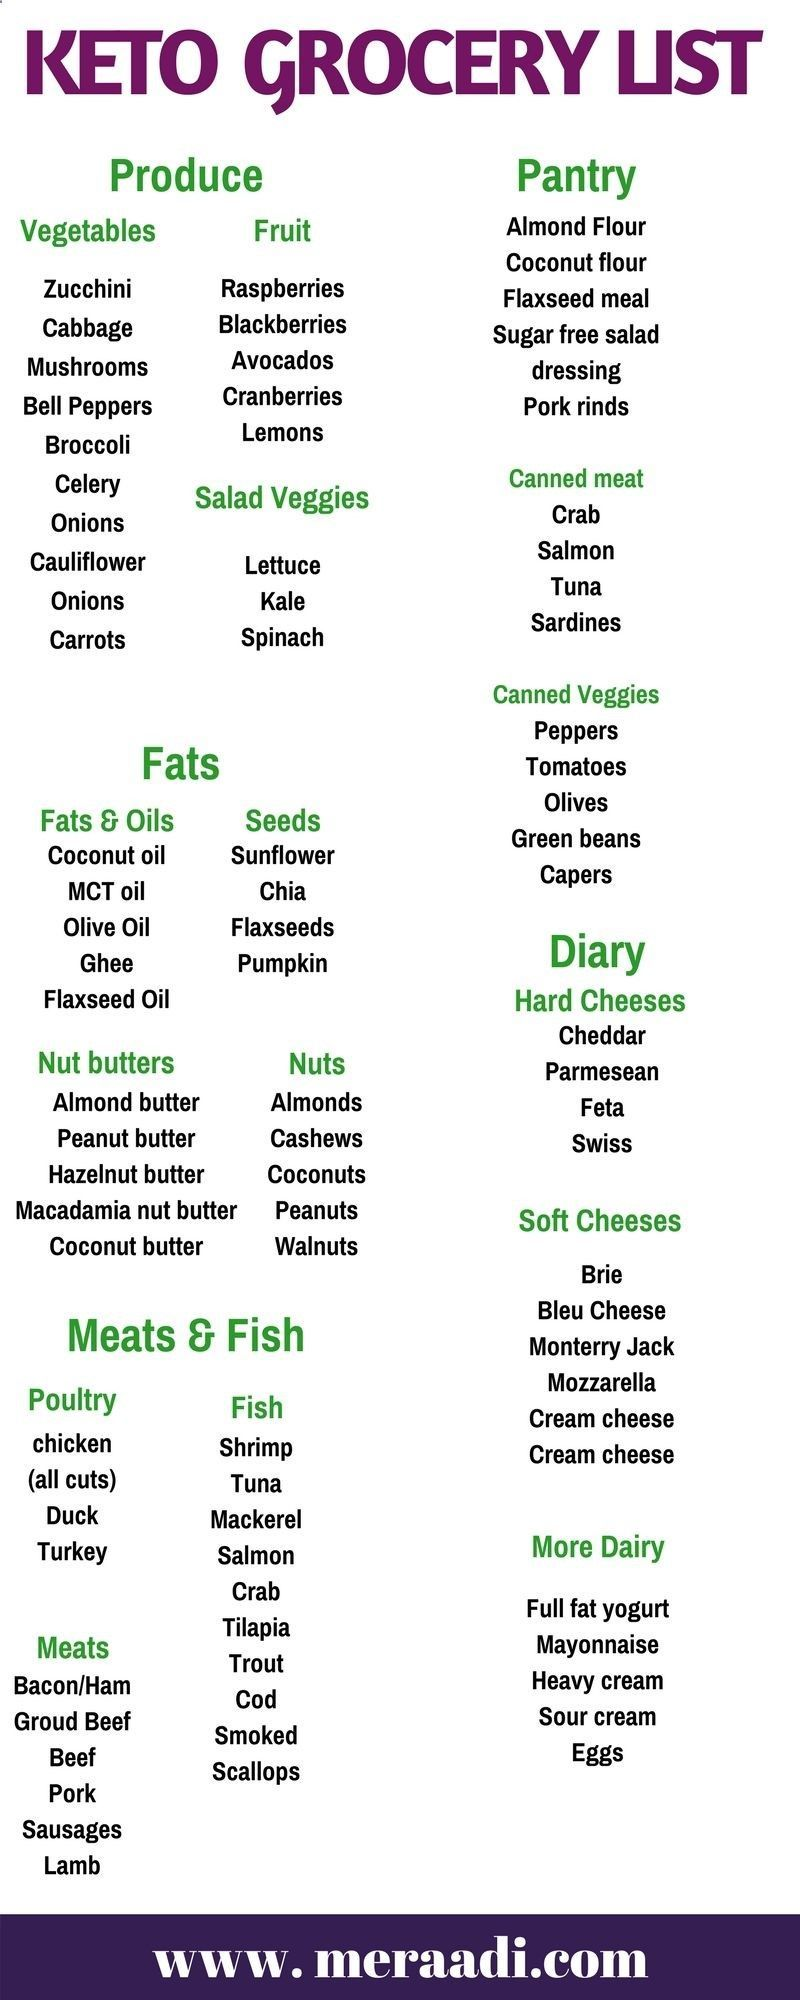 The 3 Week Diet Loss Weight Plan This keto grocery list